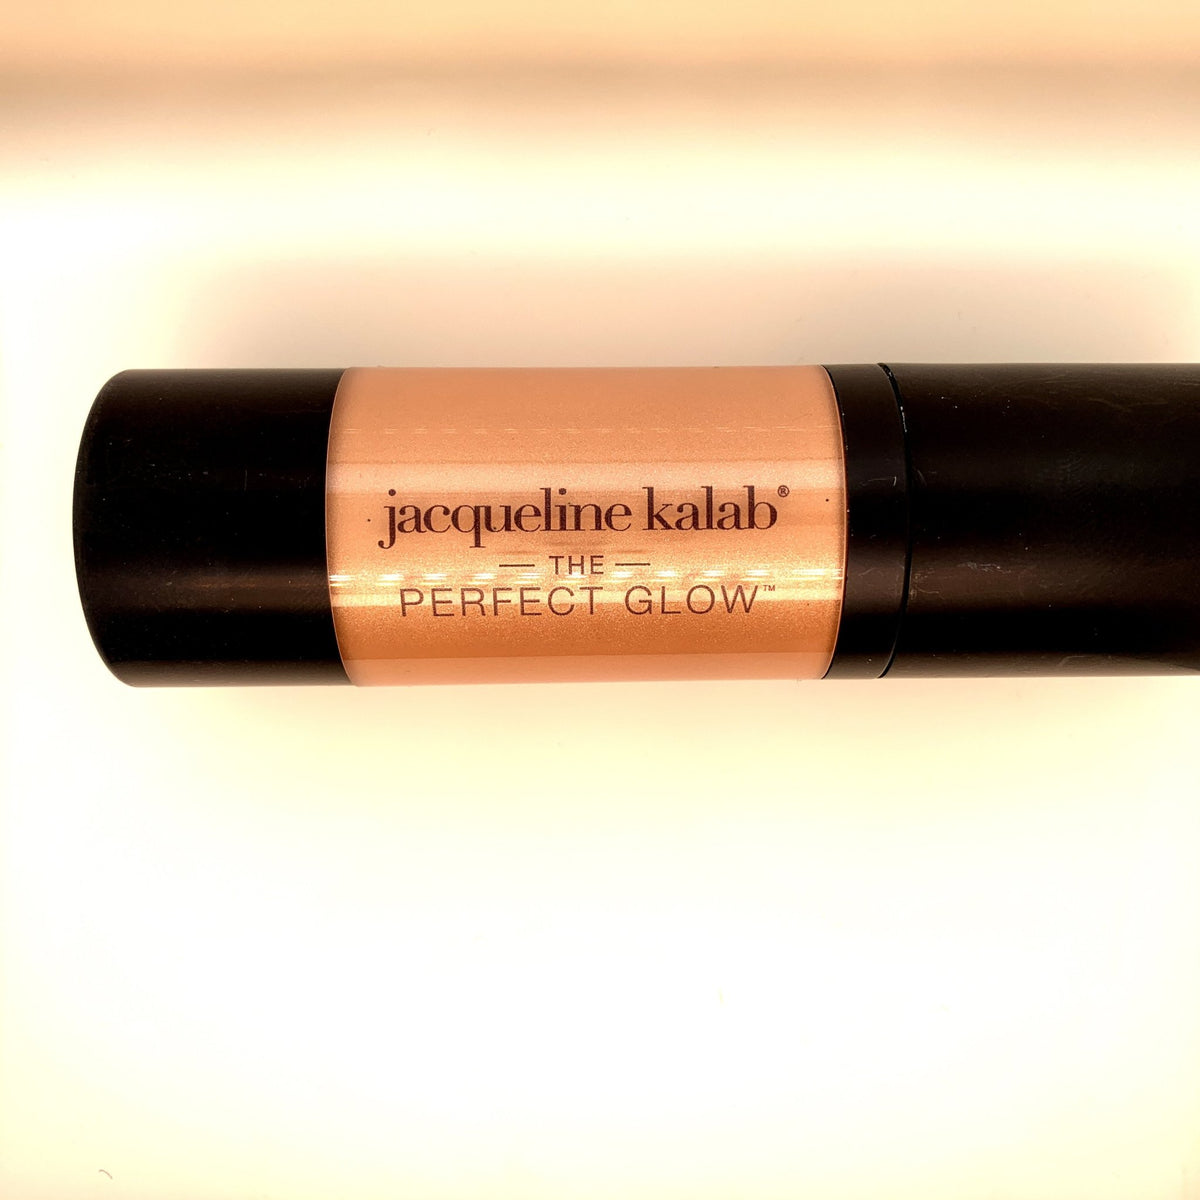 The Perfect Glow - Illuminator Highlighter Perfection Liquid - by Jacqueline Kalab - MyMakeup.Store by Jacqueline Kalab